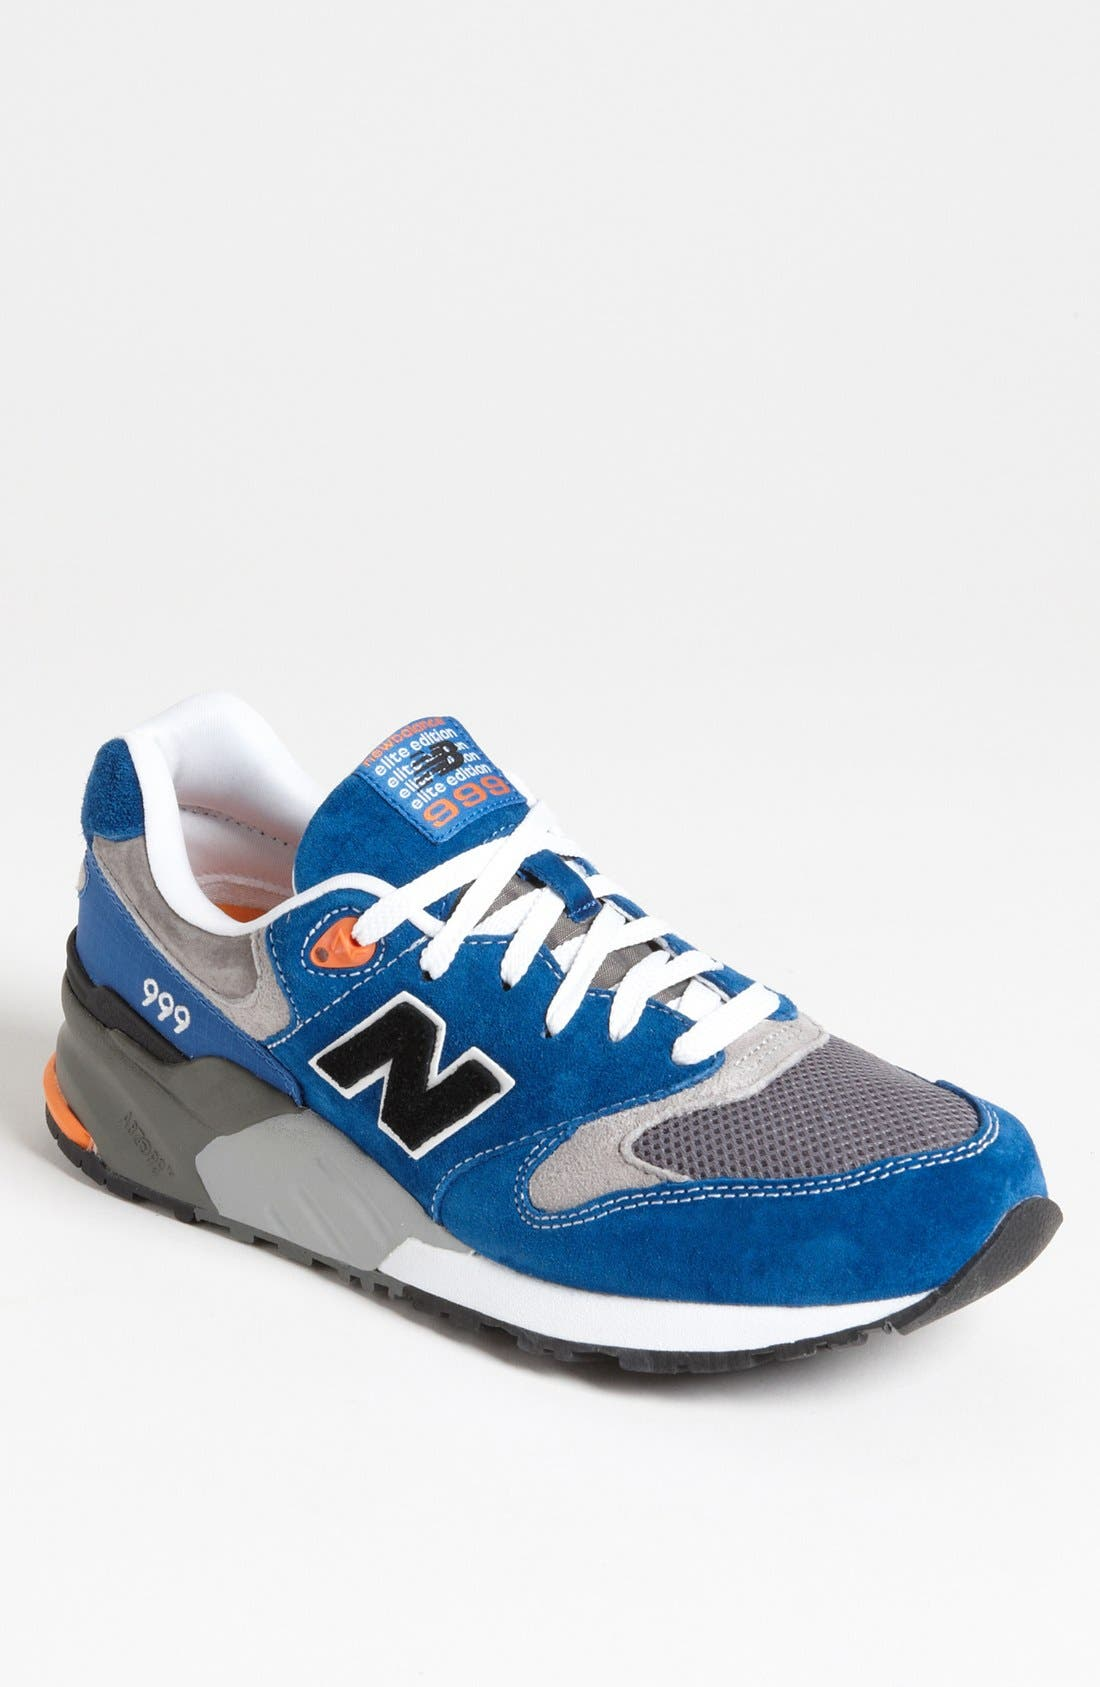 Main Image - New Balance '999 Bringback' Sneaker (Men) (Online Only)